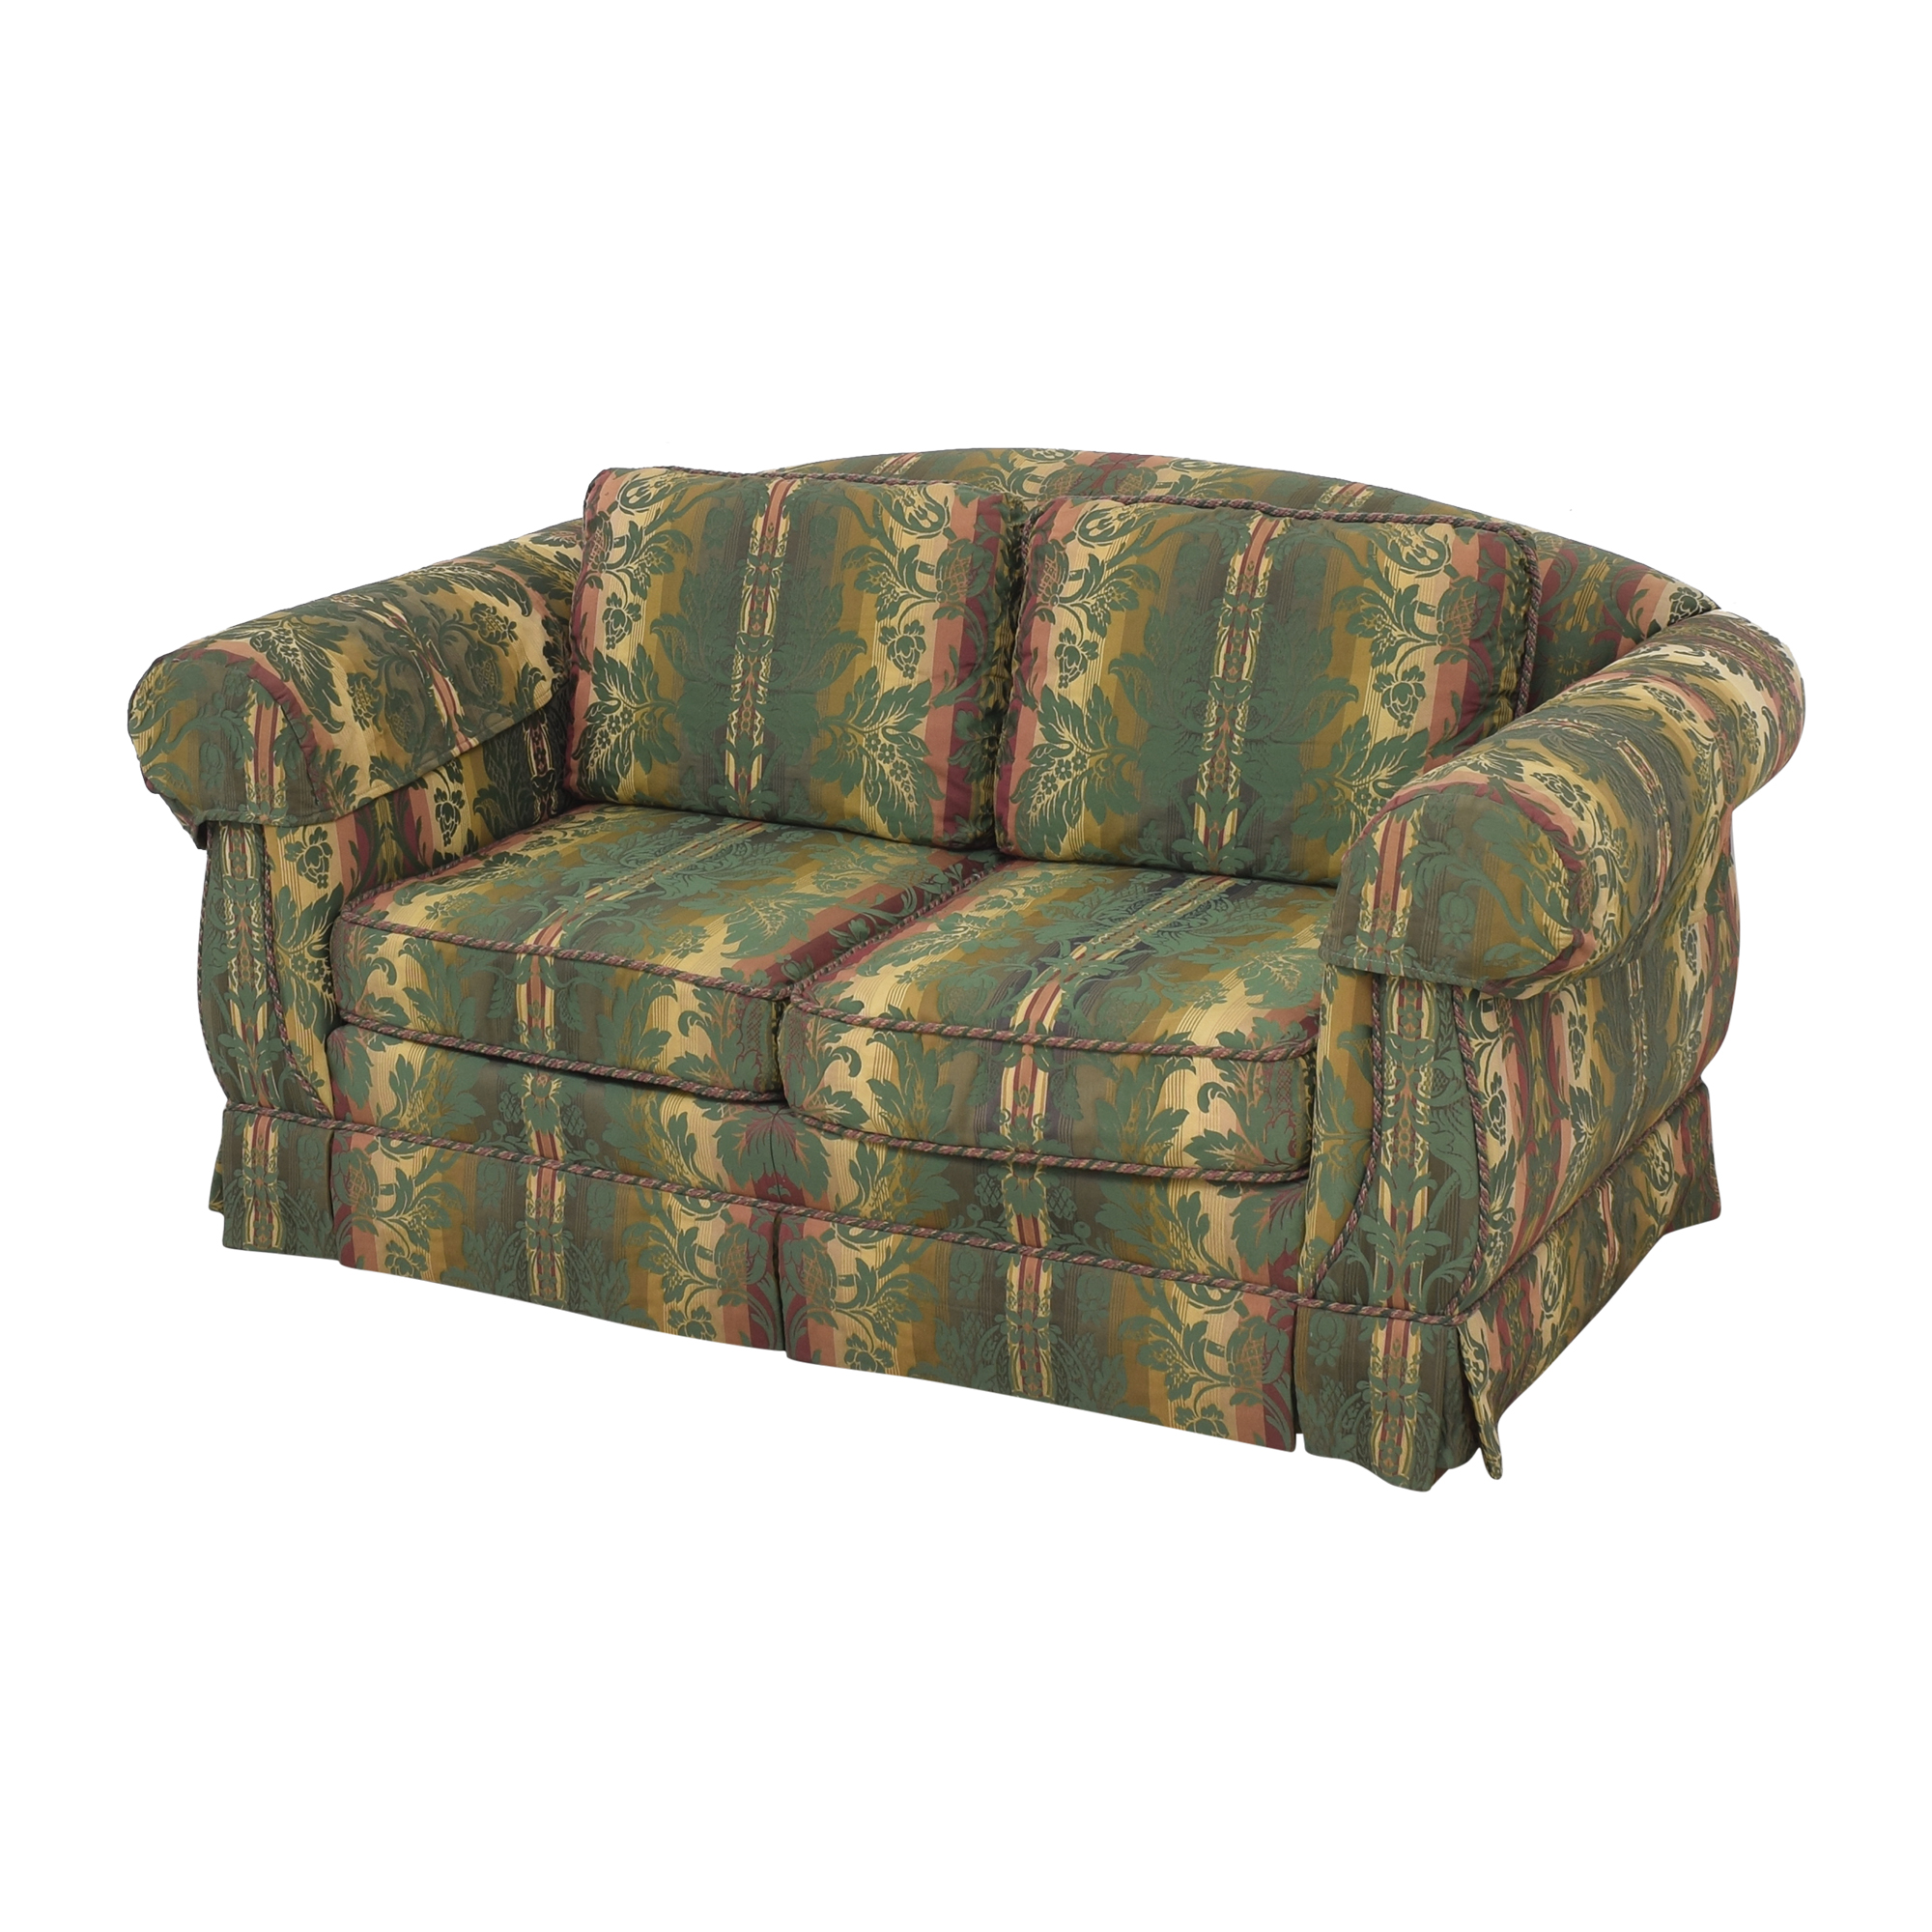 Thomasville Thomasville Patterned Two Cushion Sofa discount